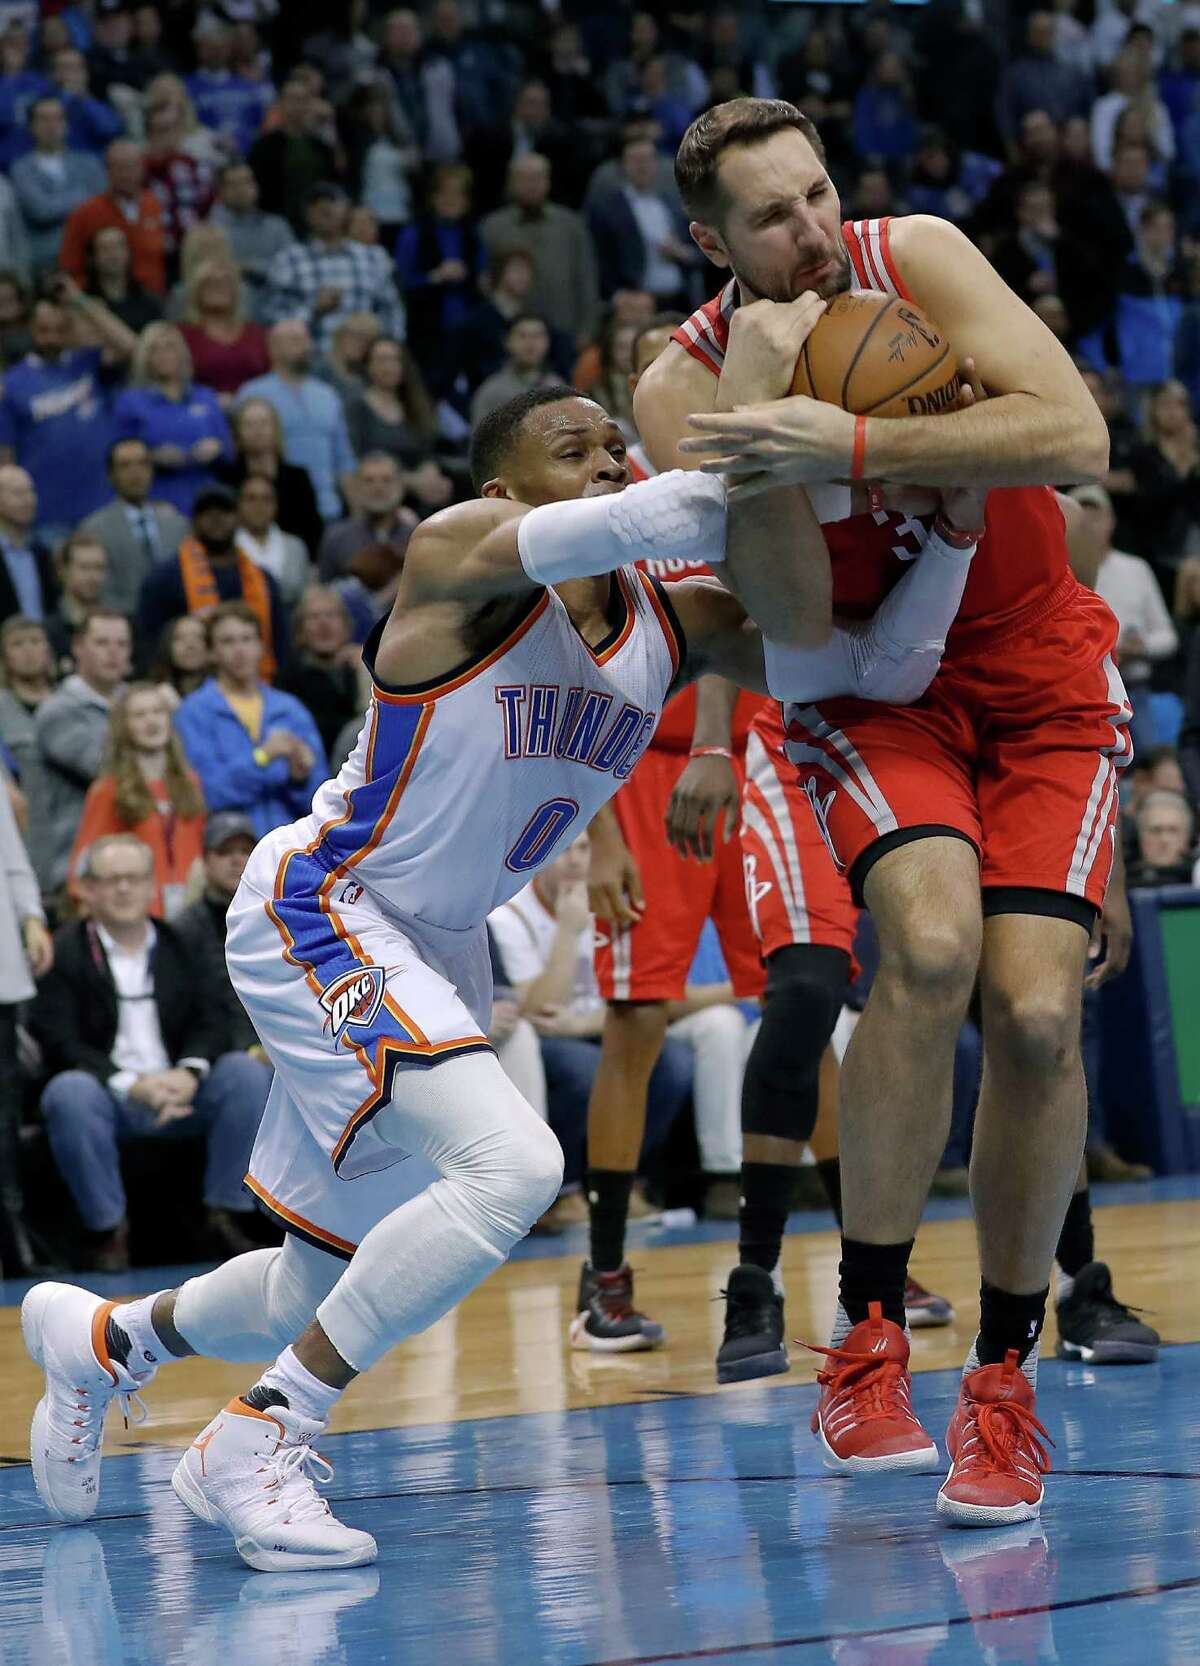 Oklahoma City Thunder guard Russell Westbrook, left, and Houston Rockets forward Ryan Anderson, right, tussle for a loose ball during the second half of an NBA basketball game in Oklahoma City, Friday, Dec. 9, 2016. Houston won 102-99. (AP Photo/Alonzo Adams)